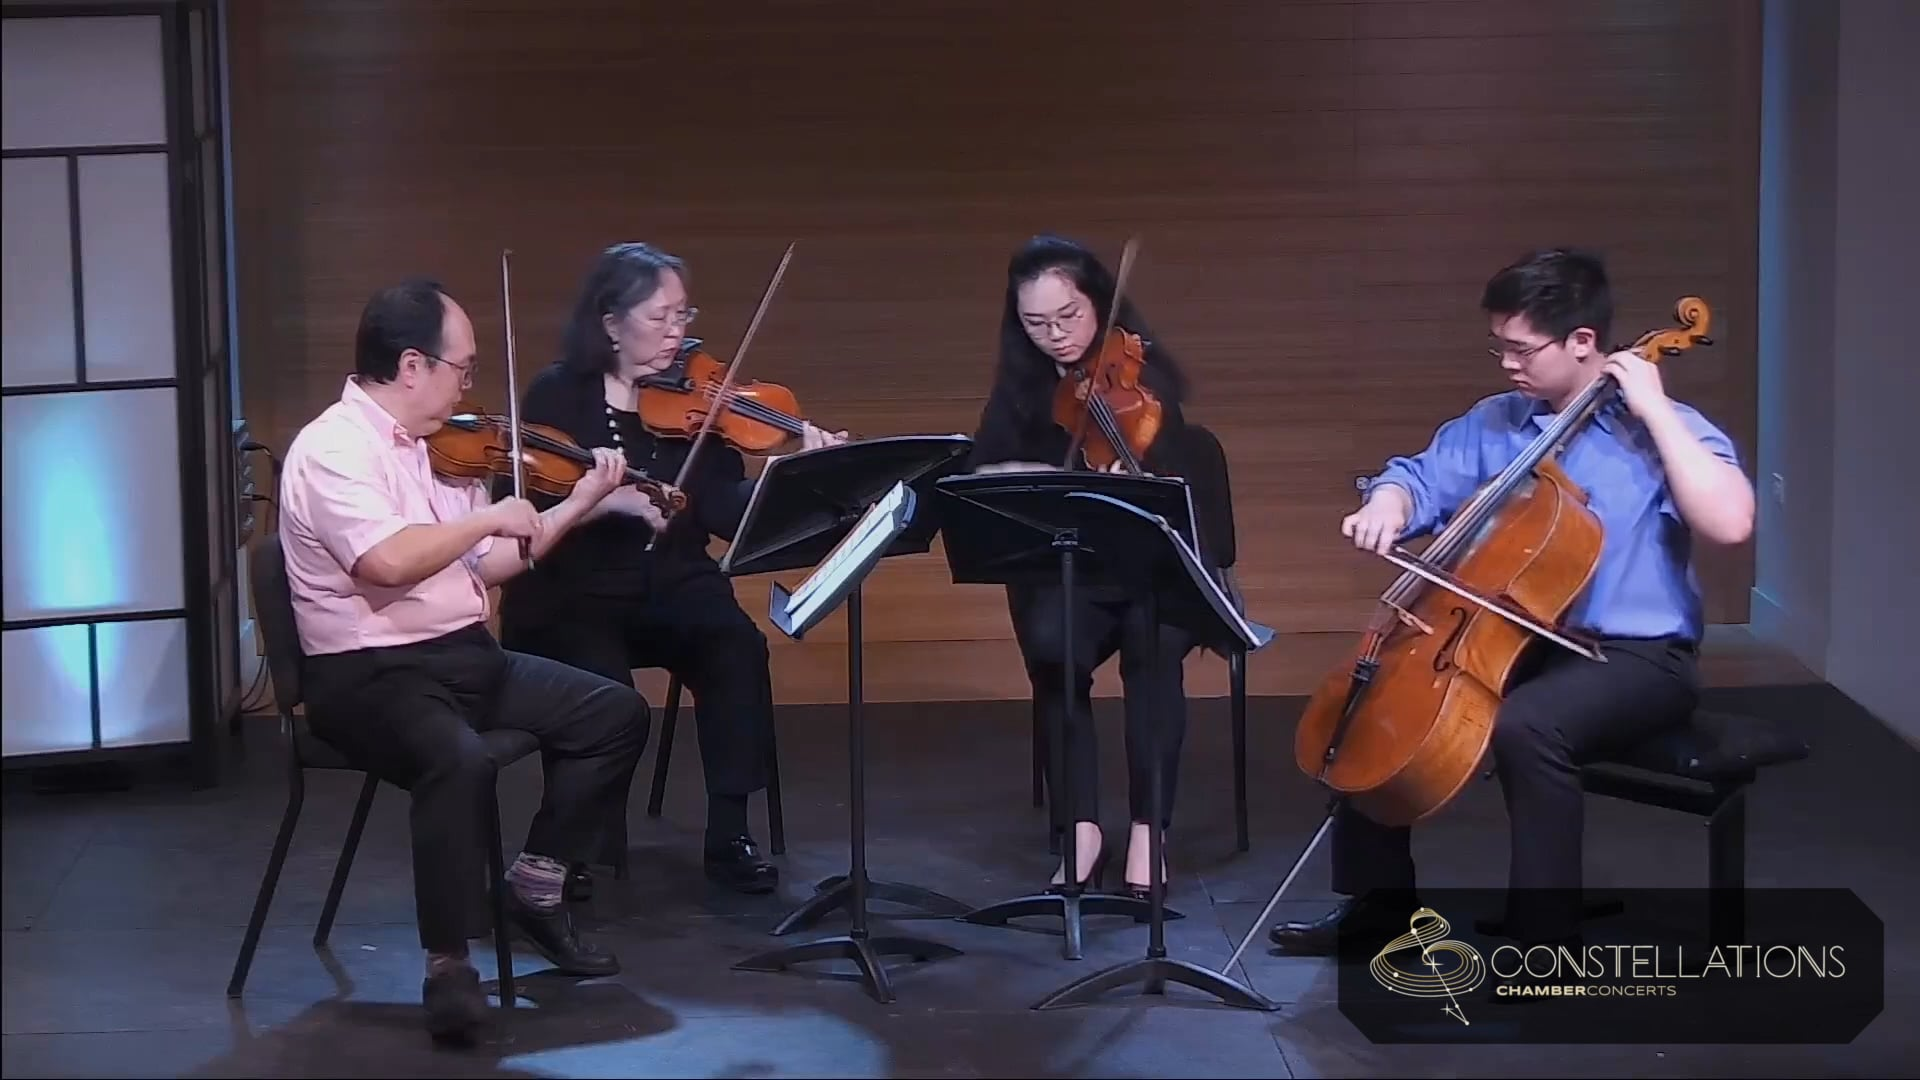 Chen Family Quartet: Florence Price - Five Folksongs in Counterpoint, Short'nin' Bread